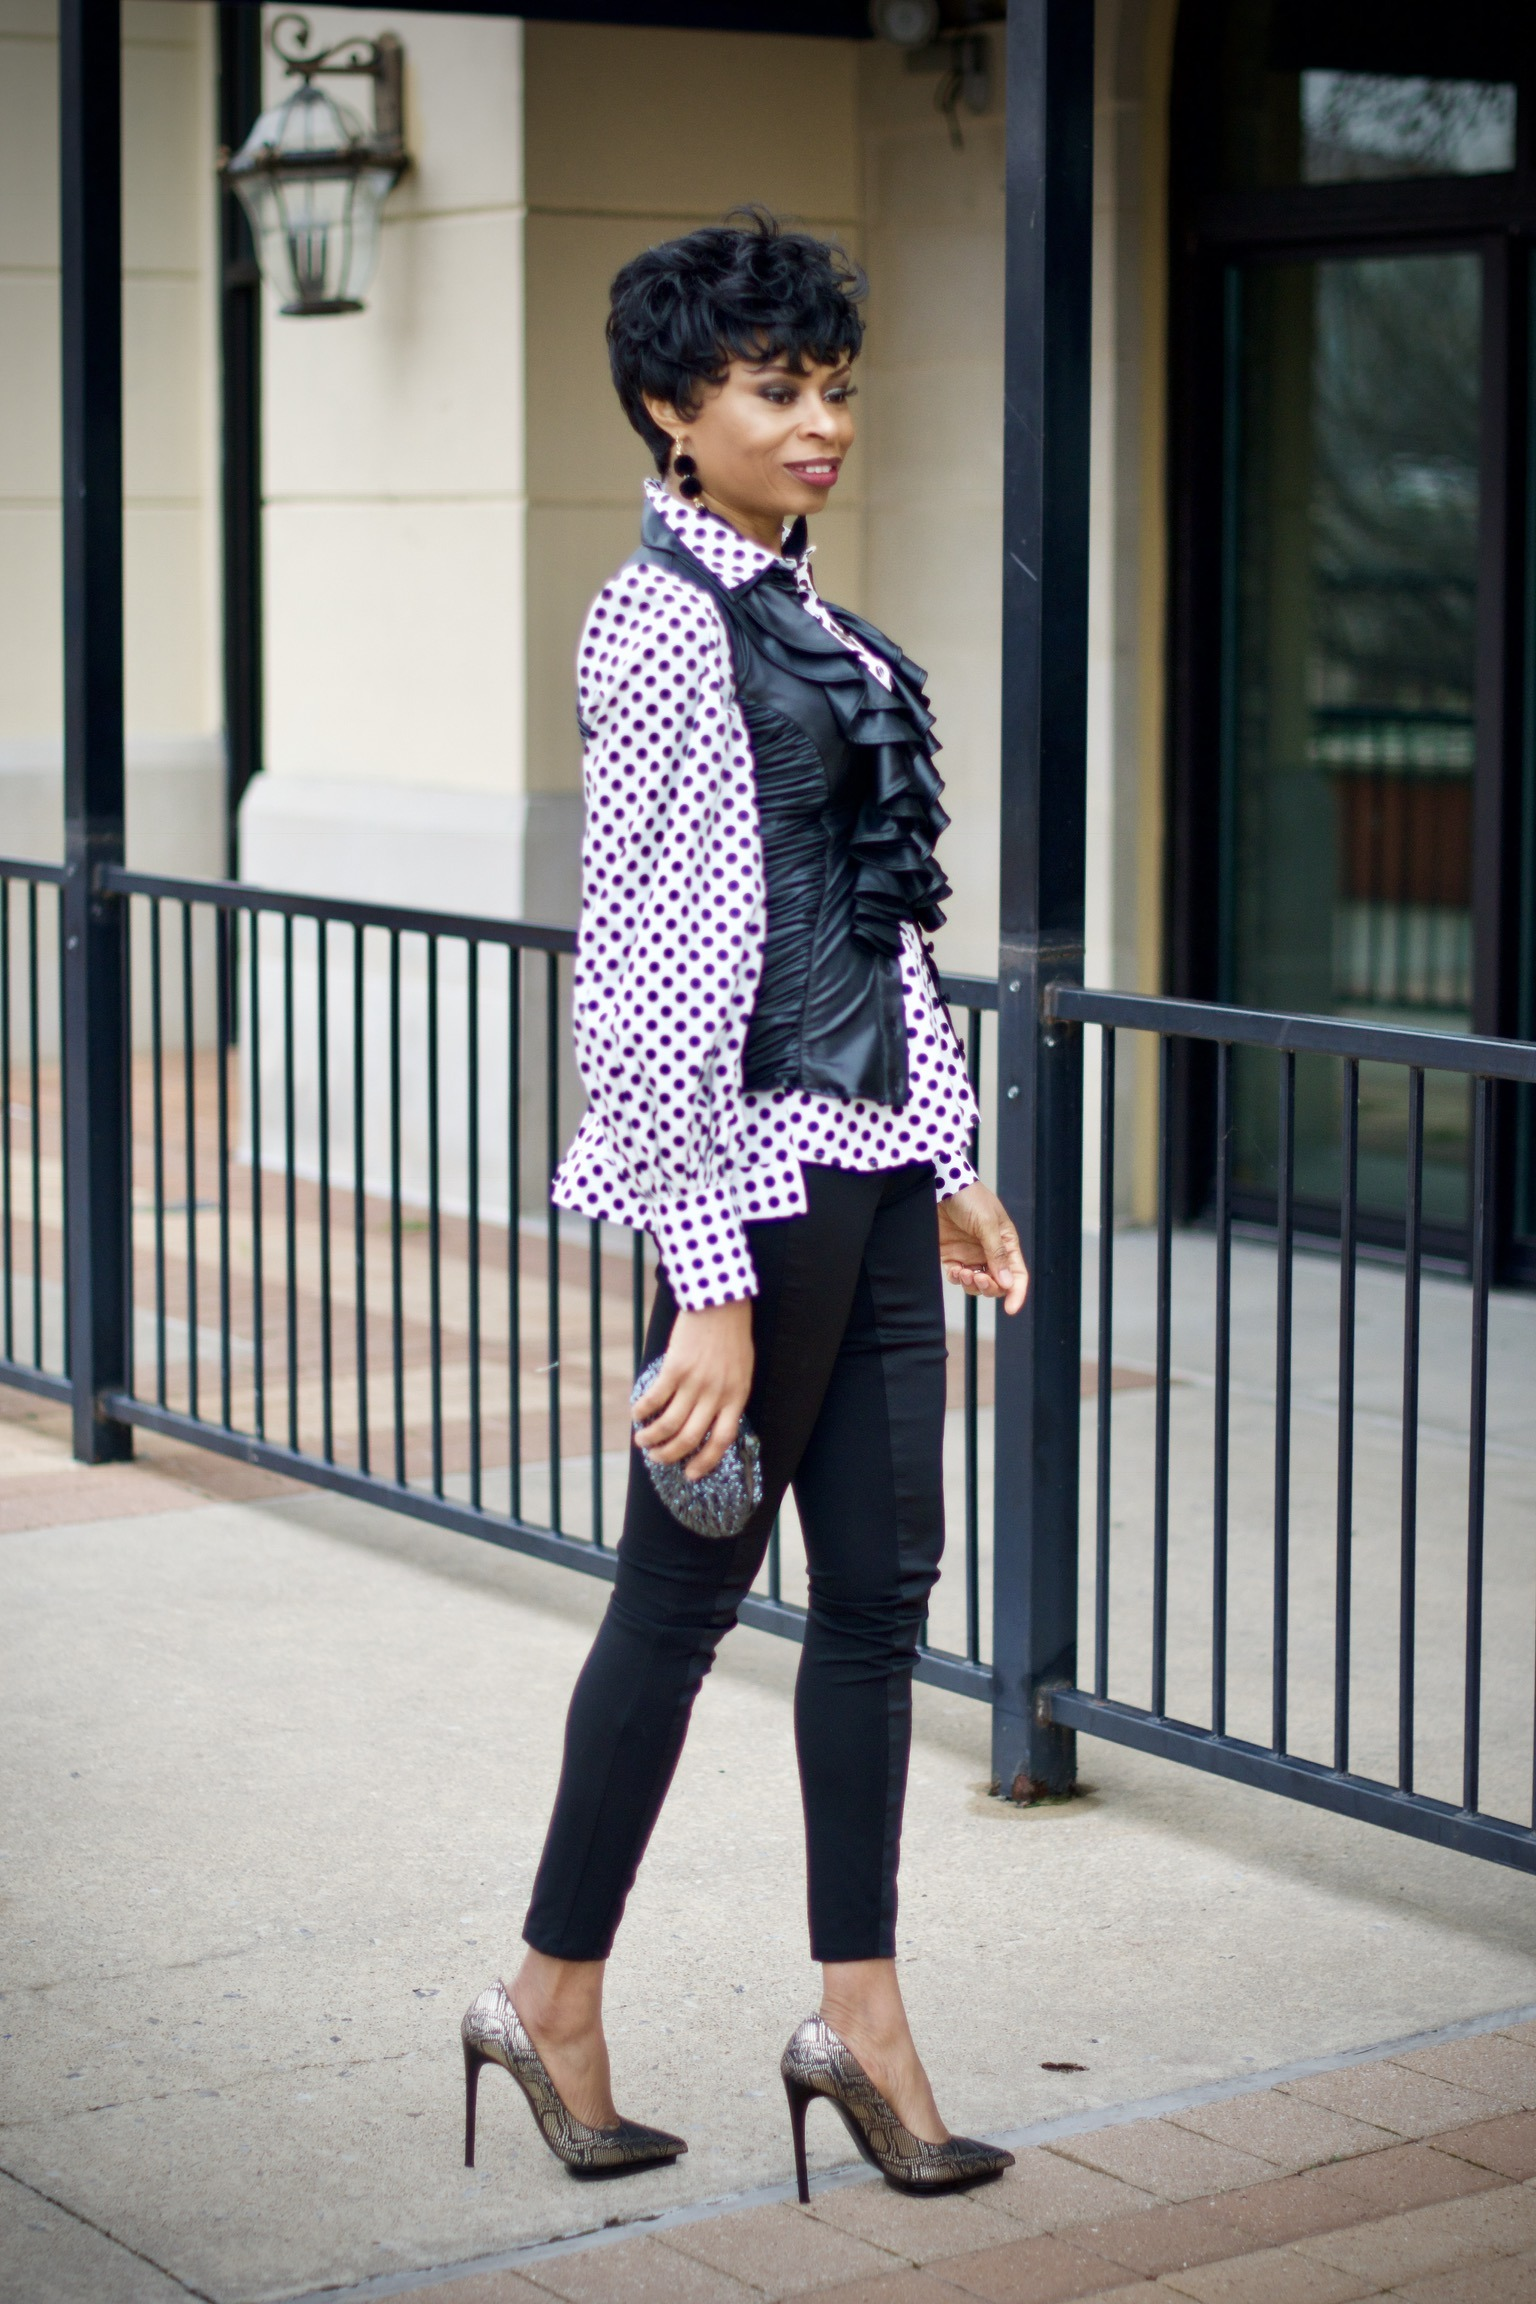 Polka dots and stripes-match made in heaven